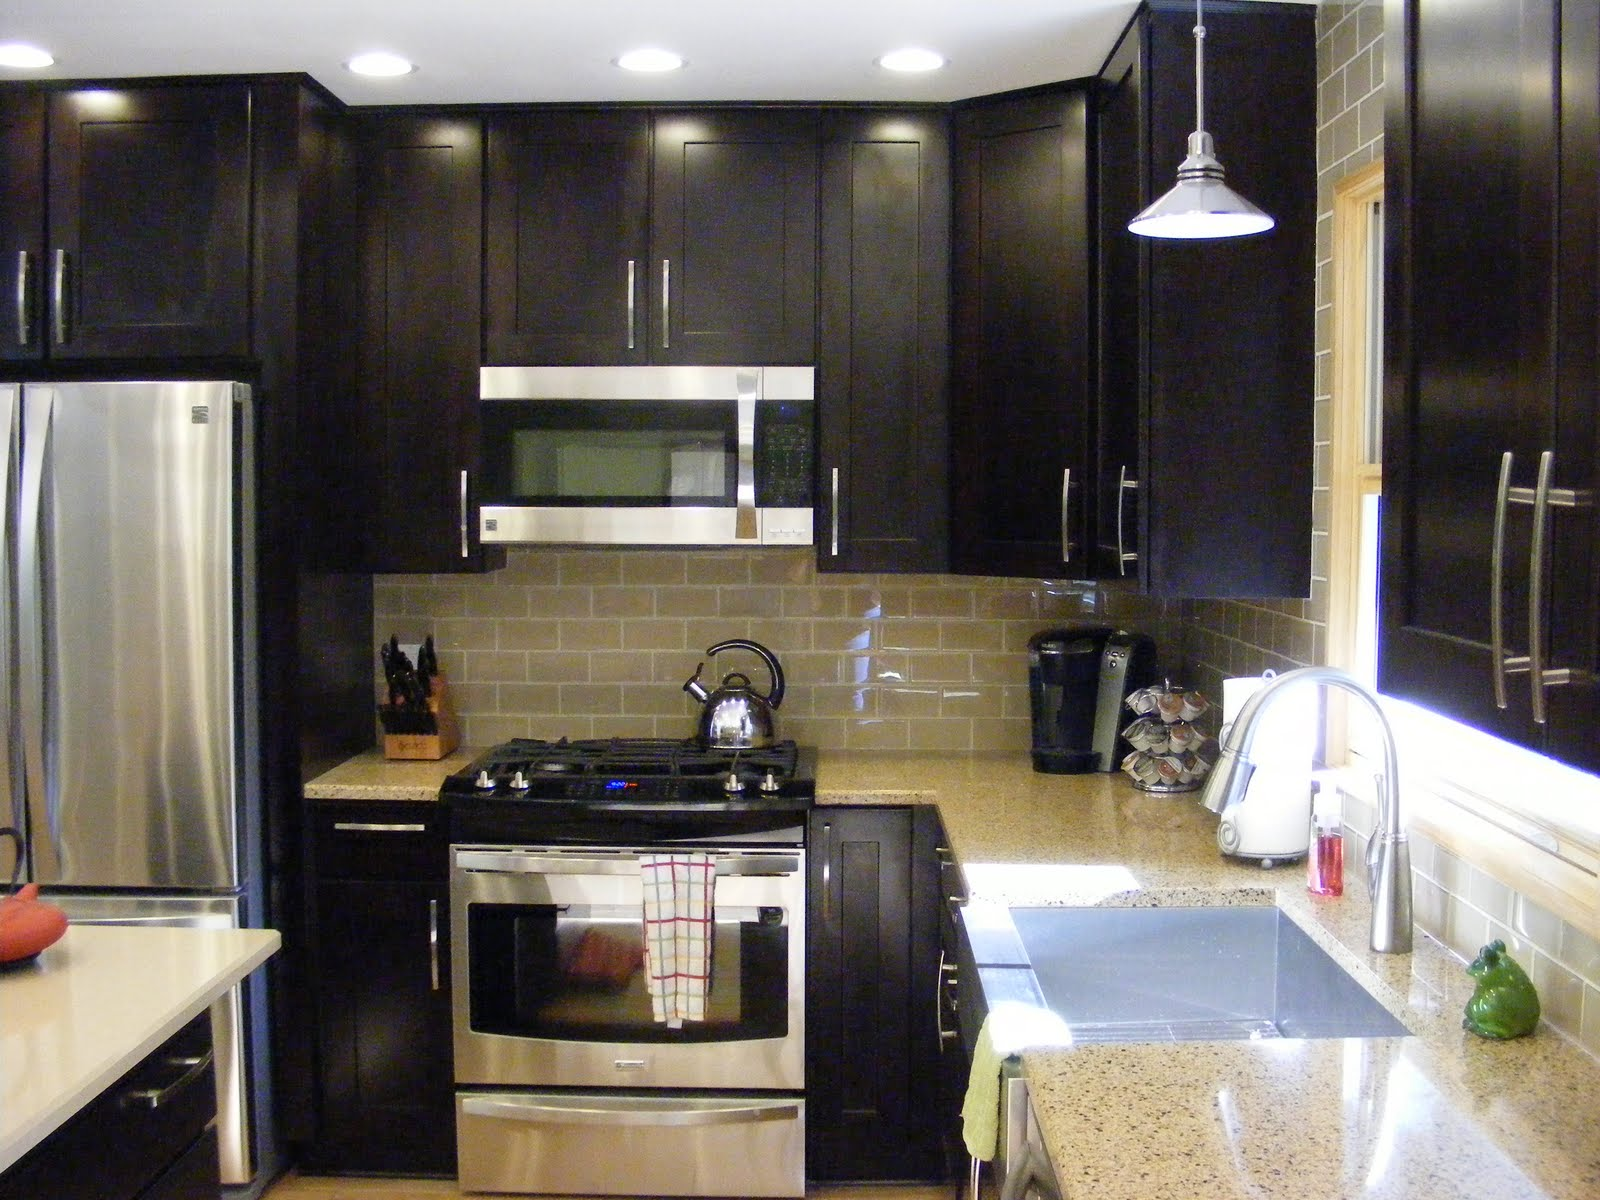 Kitchen remodel archives mhi interiors mhi interiors for Silver and black kitchen ideas